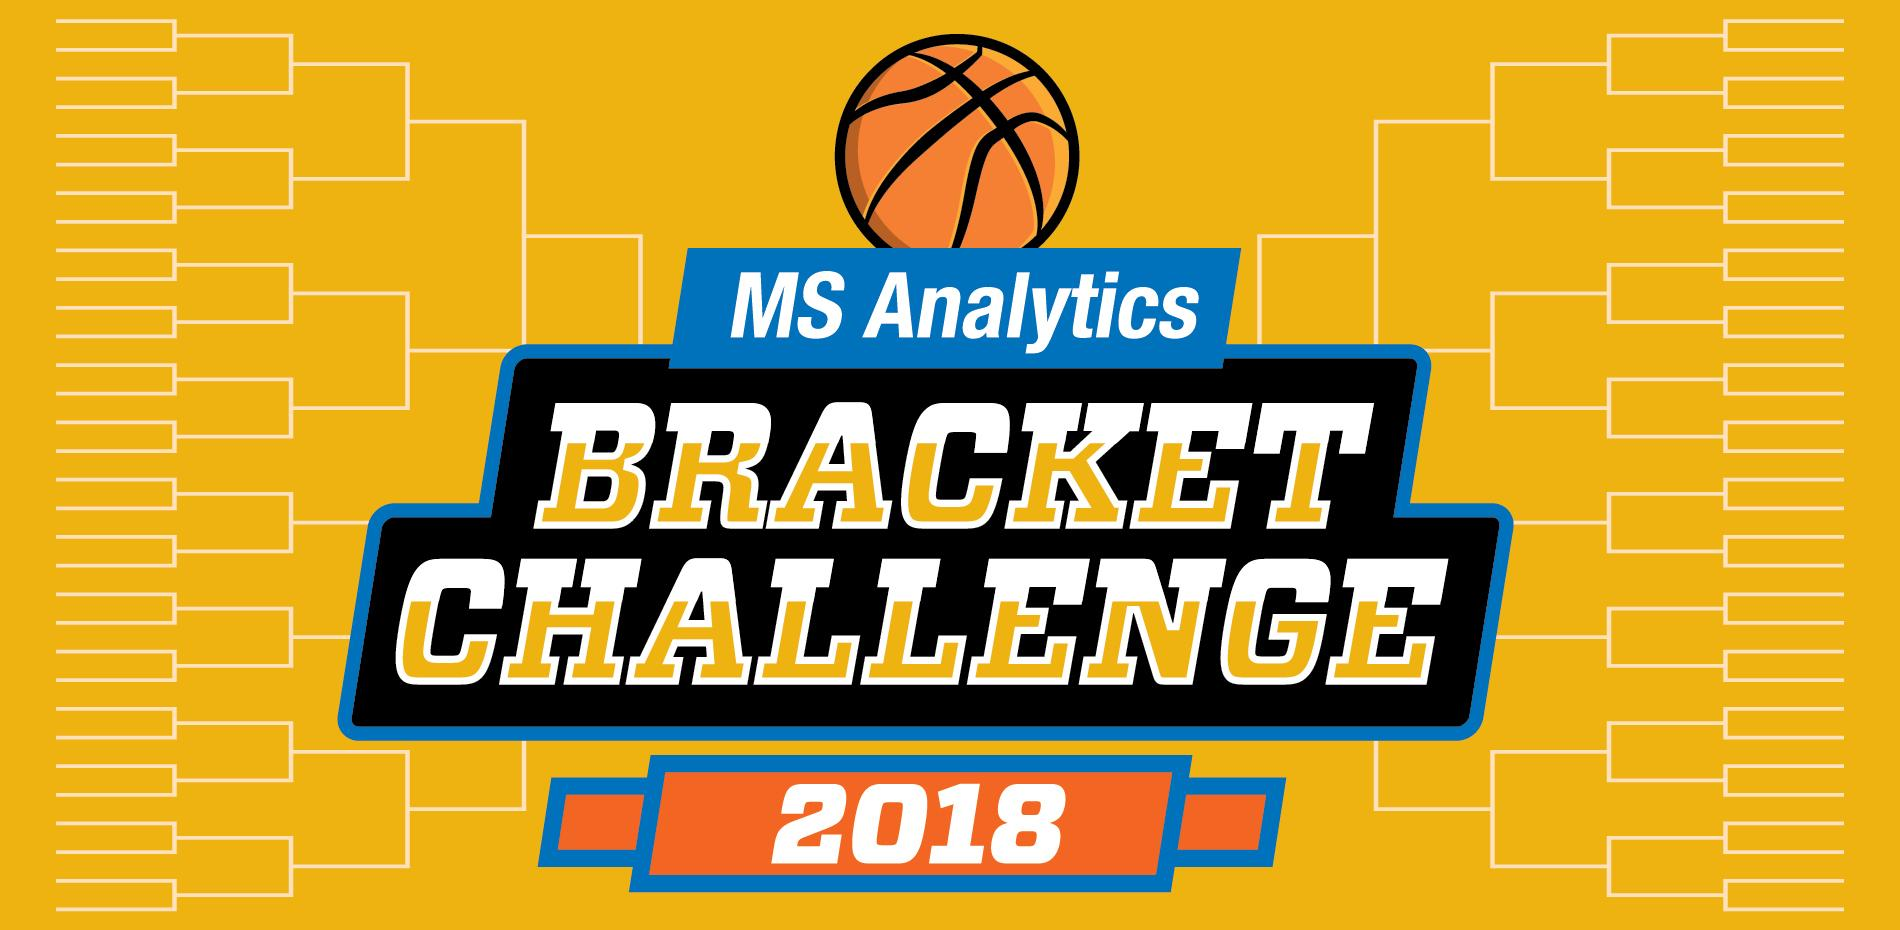 Master's in Analytics bracket challenge logo